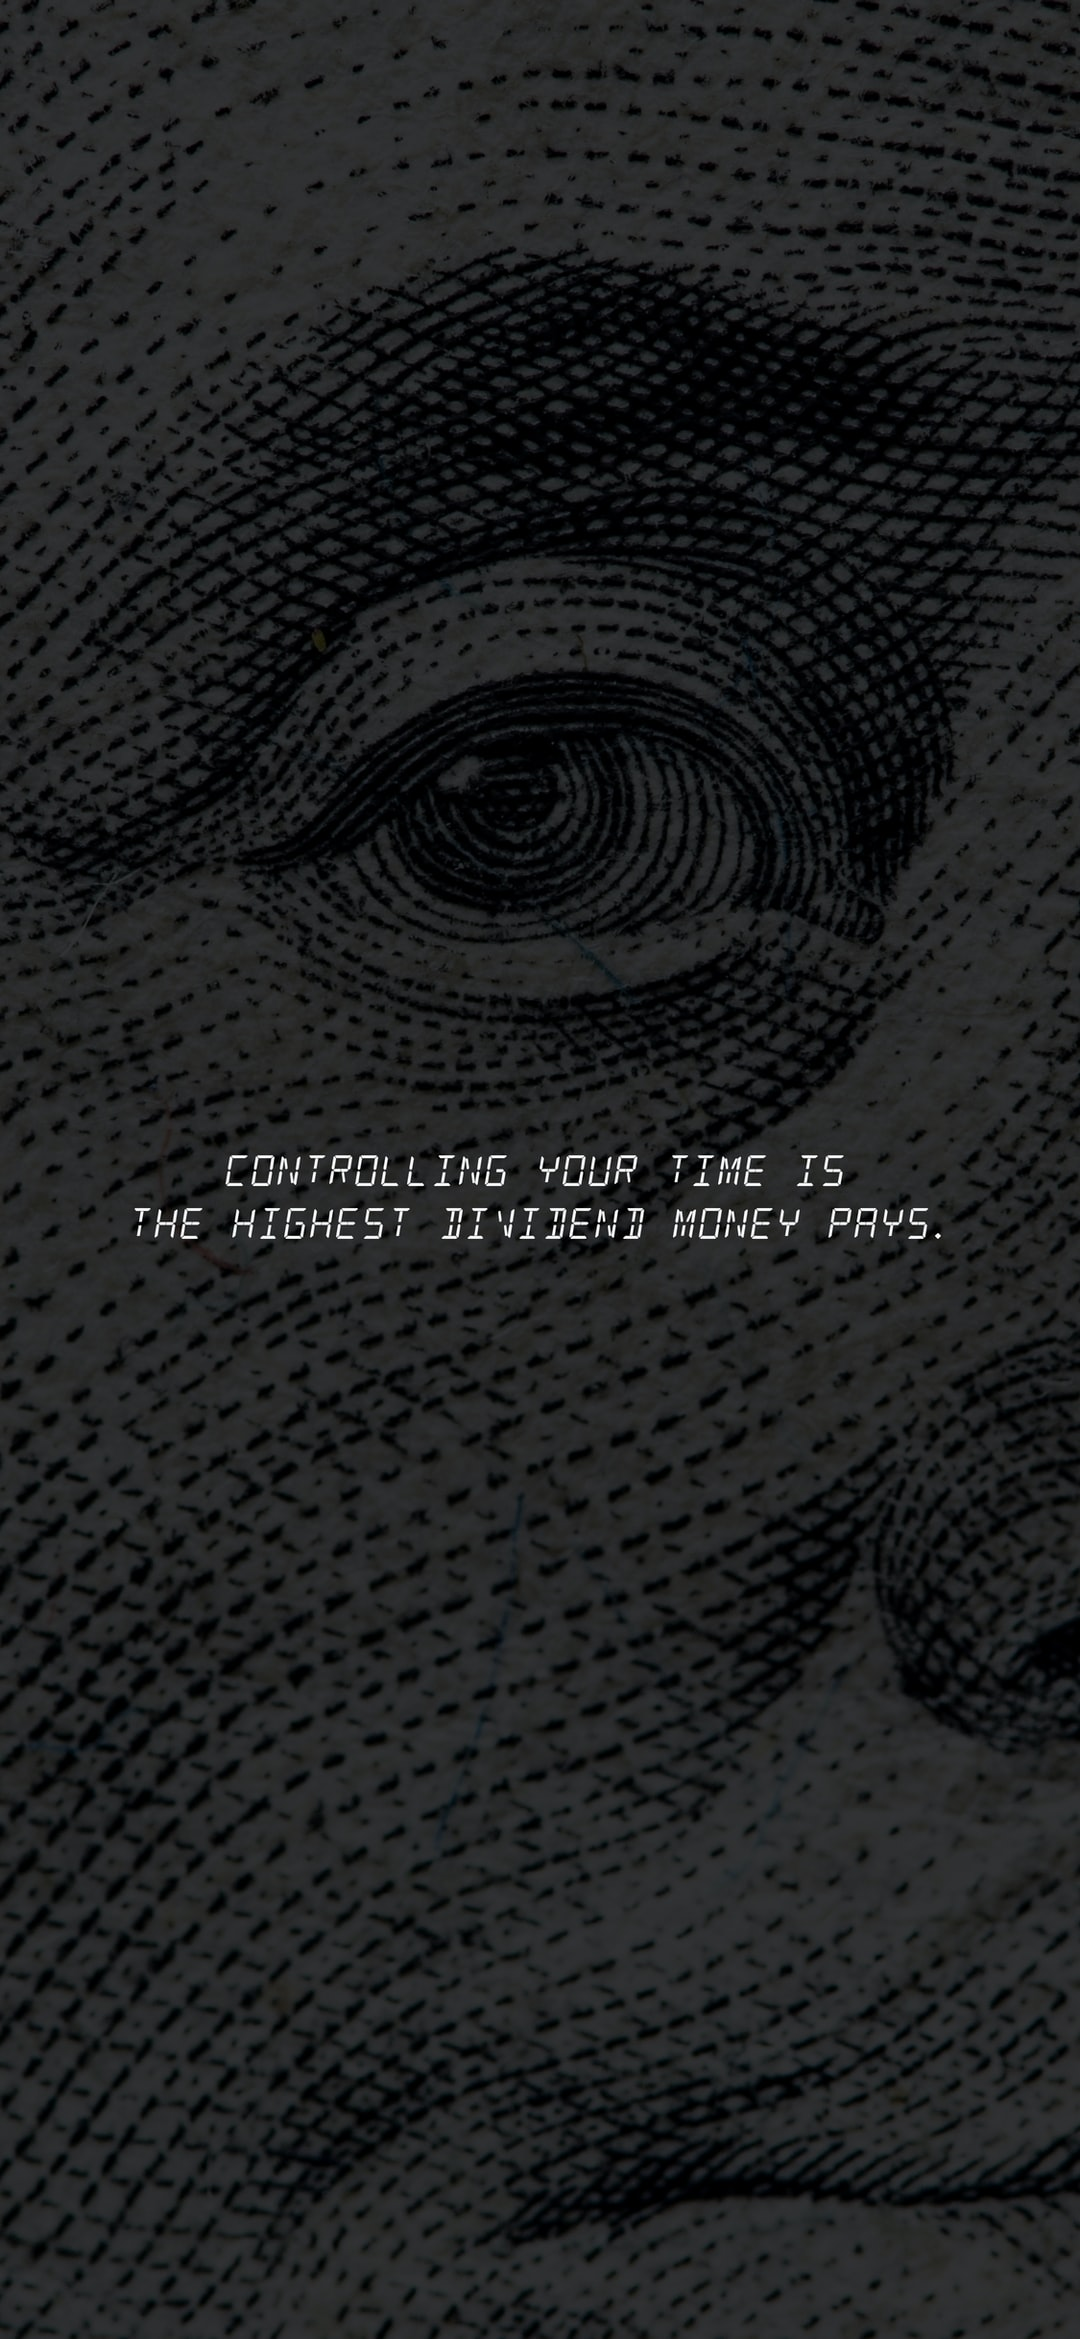 Controlling your time is the highest divided money pays.